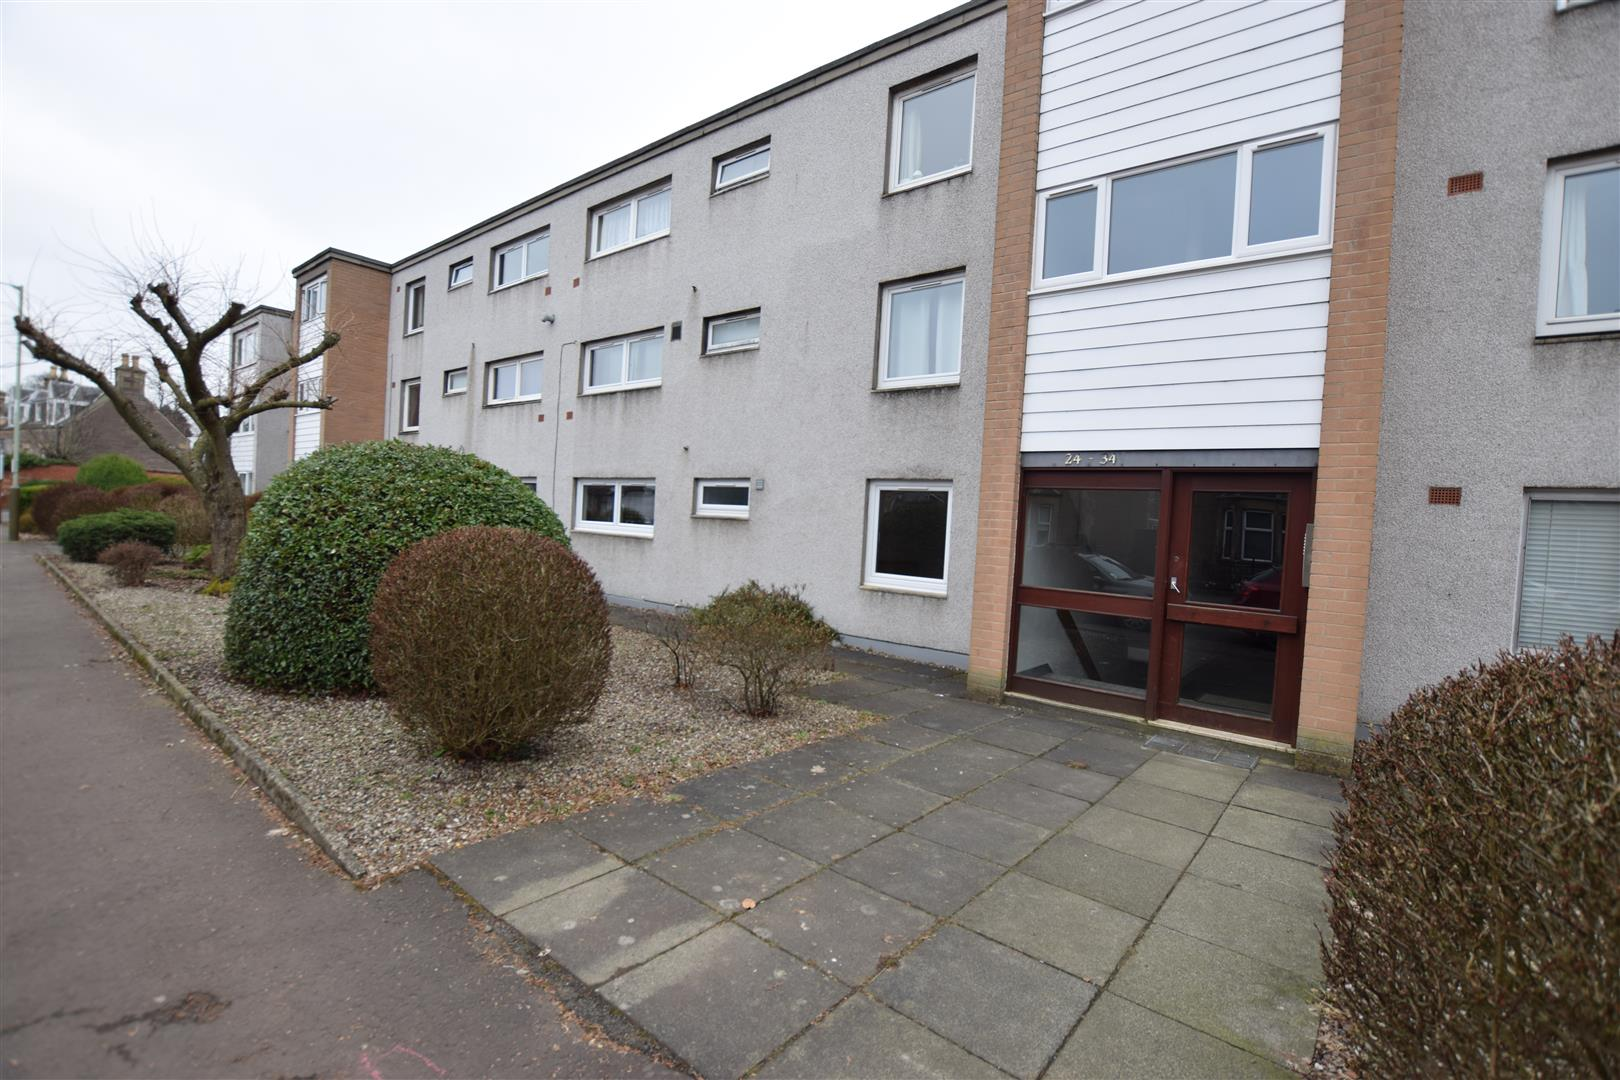 26, Muirton Place, Perth, Perthshire, PH1 5DL, UK